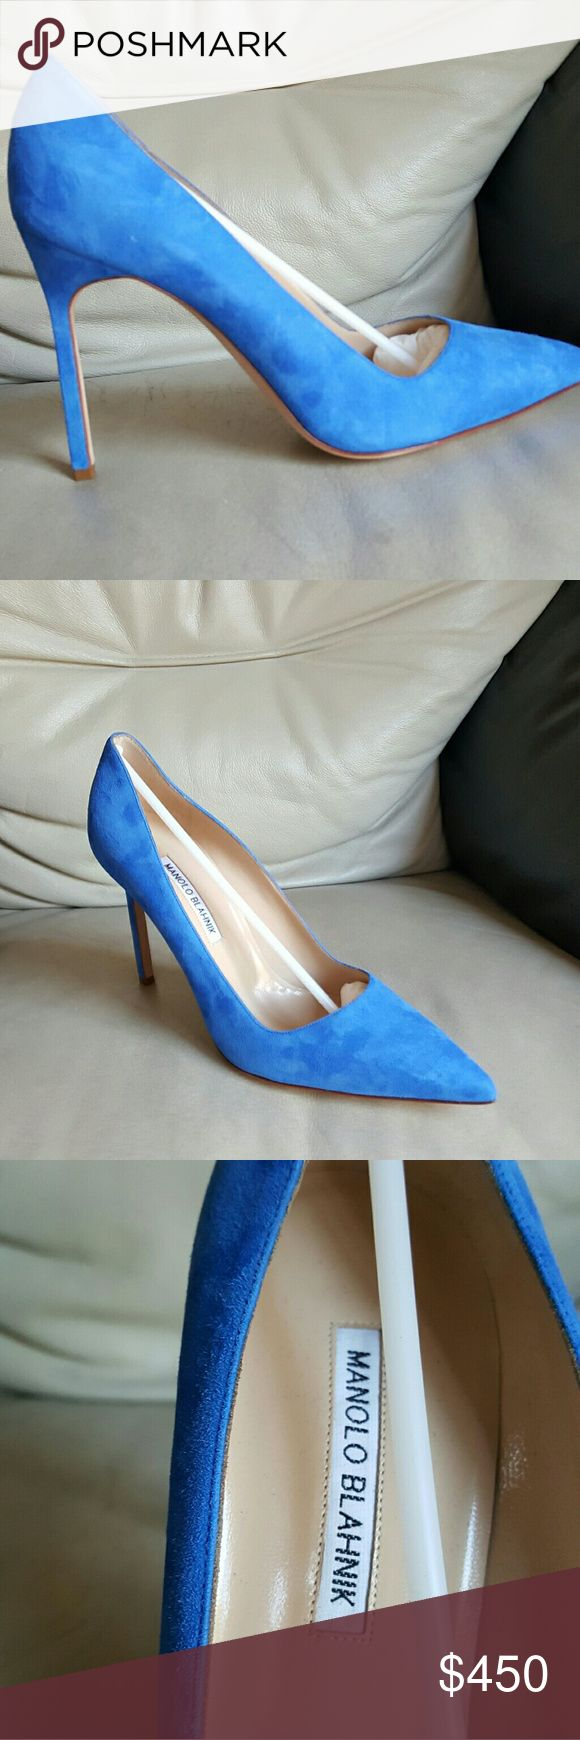 NIB Manolo Blahnik Blue Suede BB Pumps New with box and dustbags.  Heels 4 inches Manolo Blahnik Shoes Heels